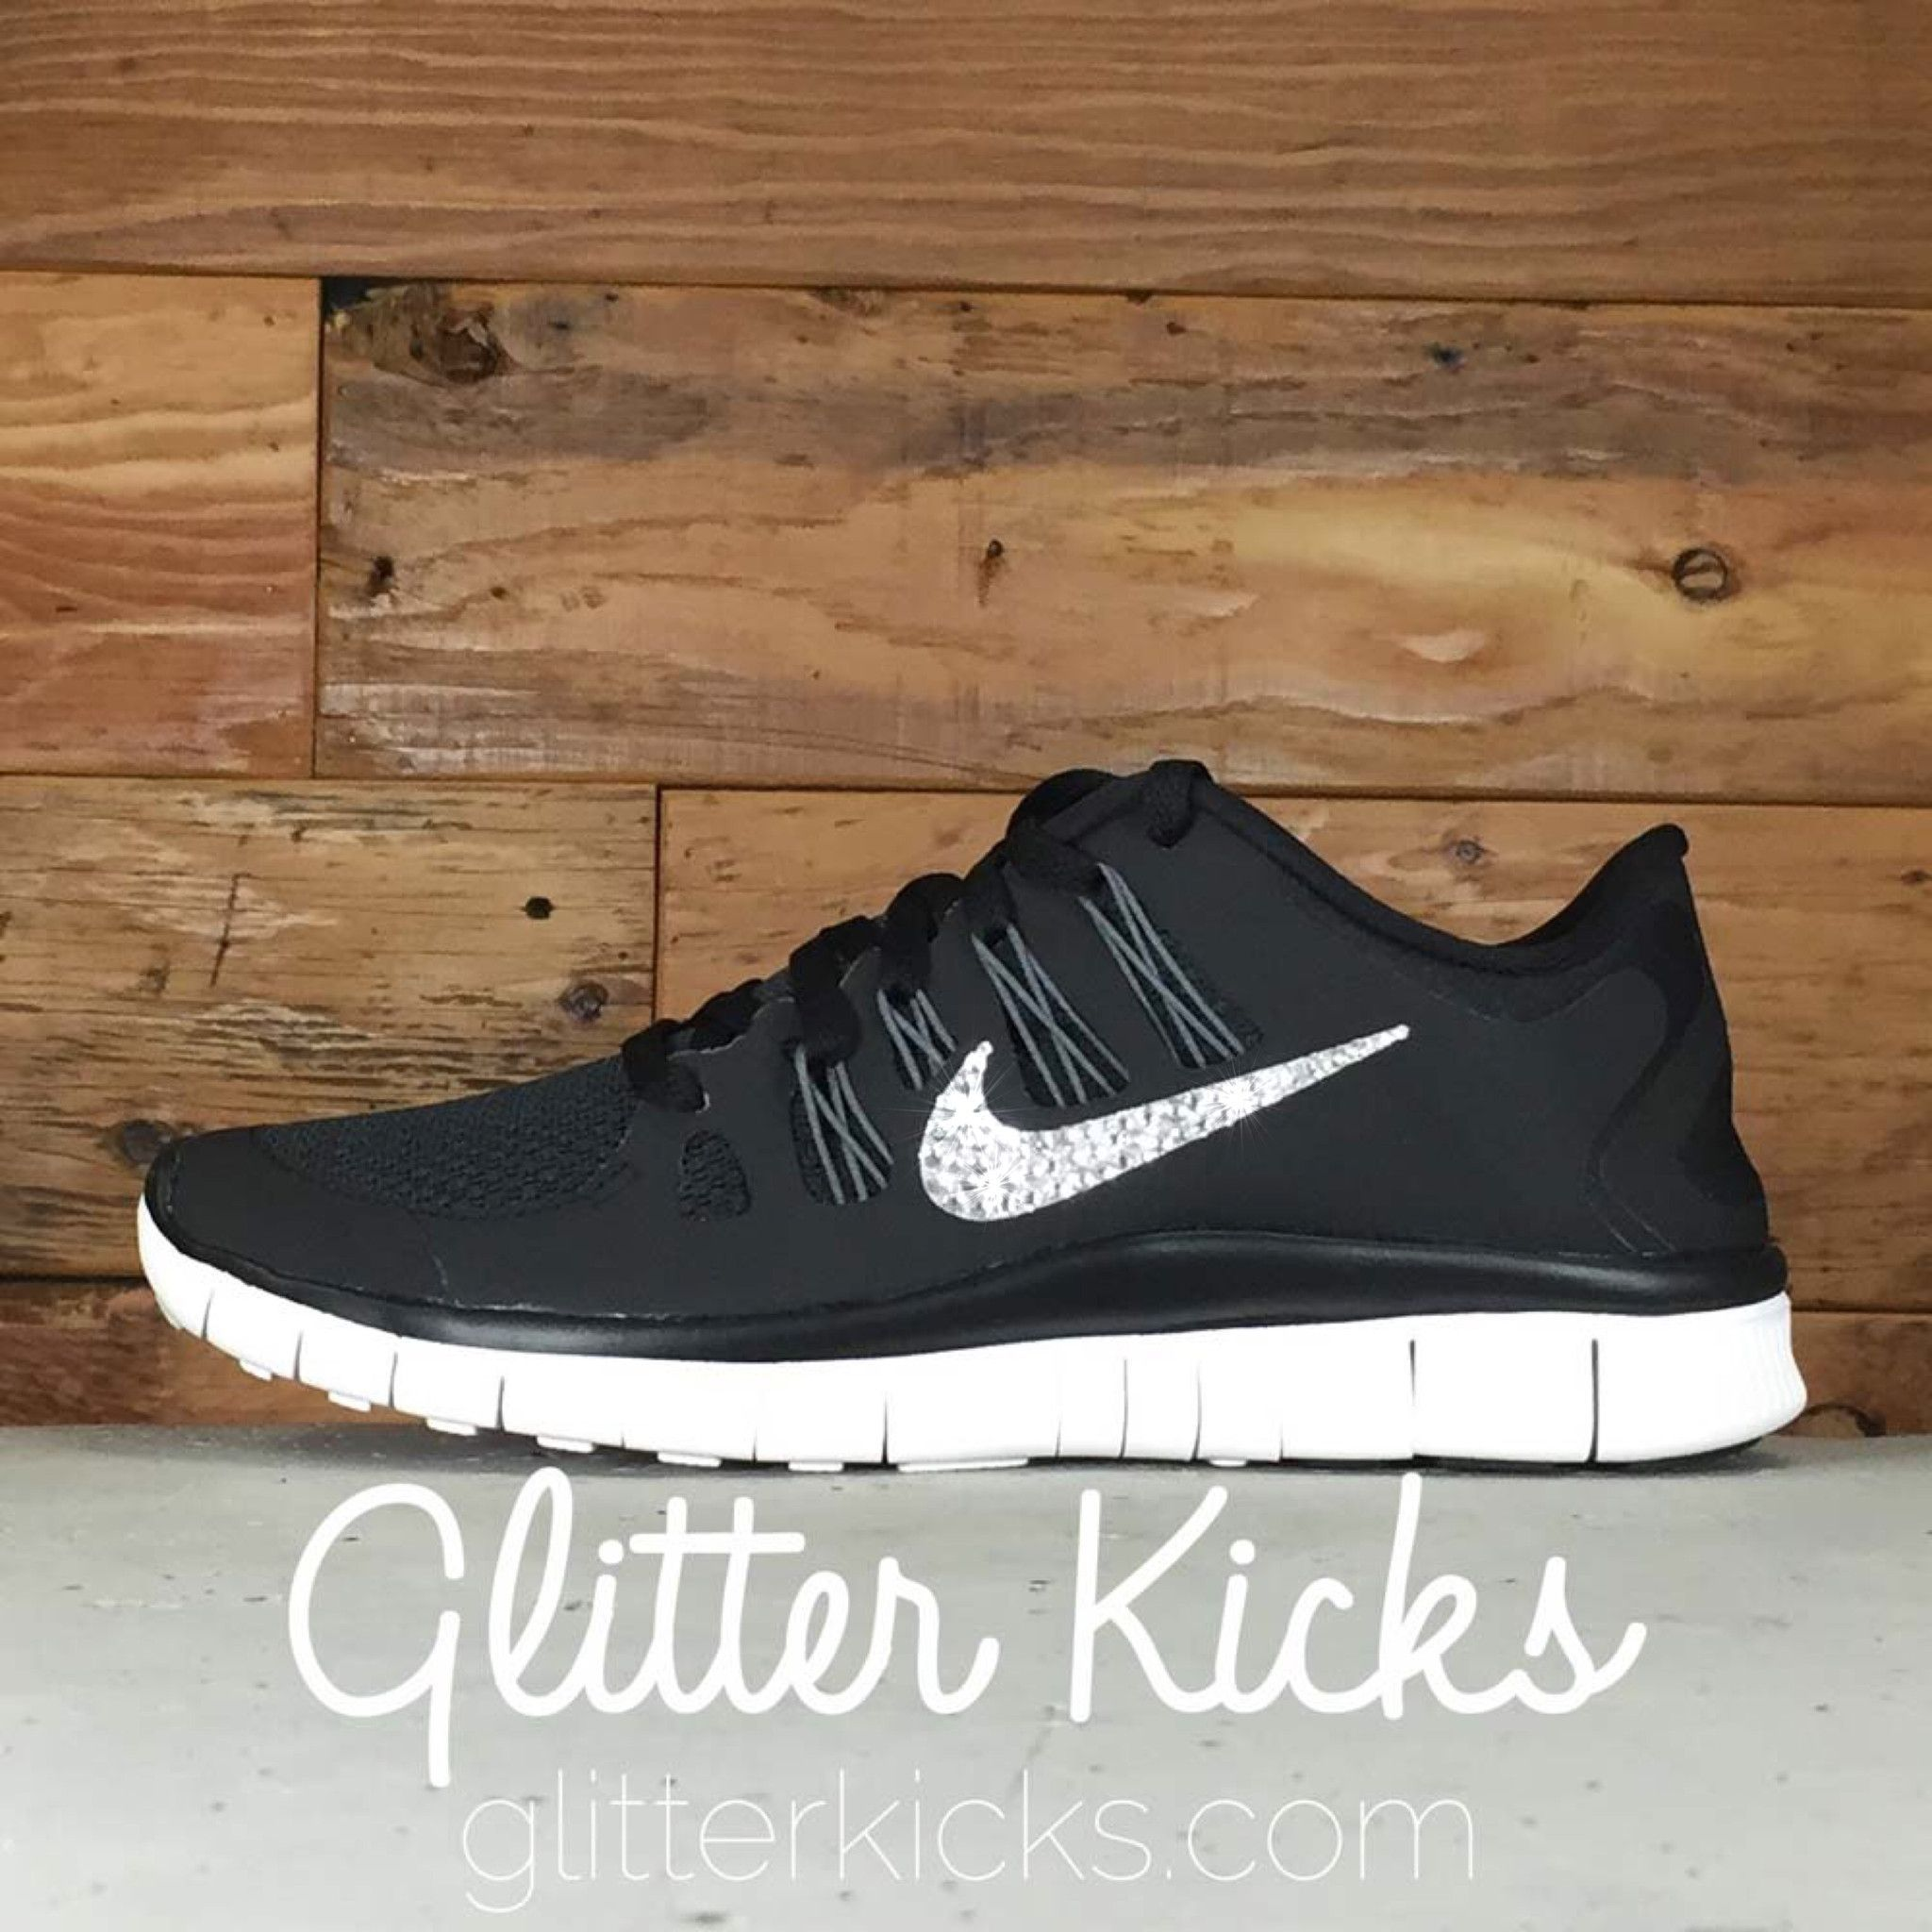 Women s Nike Free 5.0+ Running Shoes By Glitter Kicks - Hand Customized  With Swarovski Crystal Rhinestones - Black White Silver 89e5f92ef08f